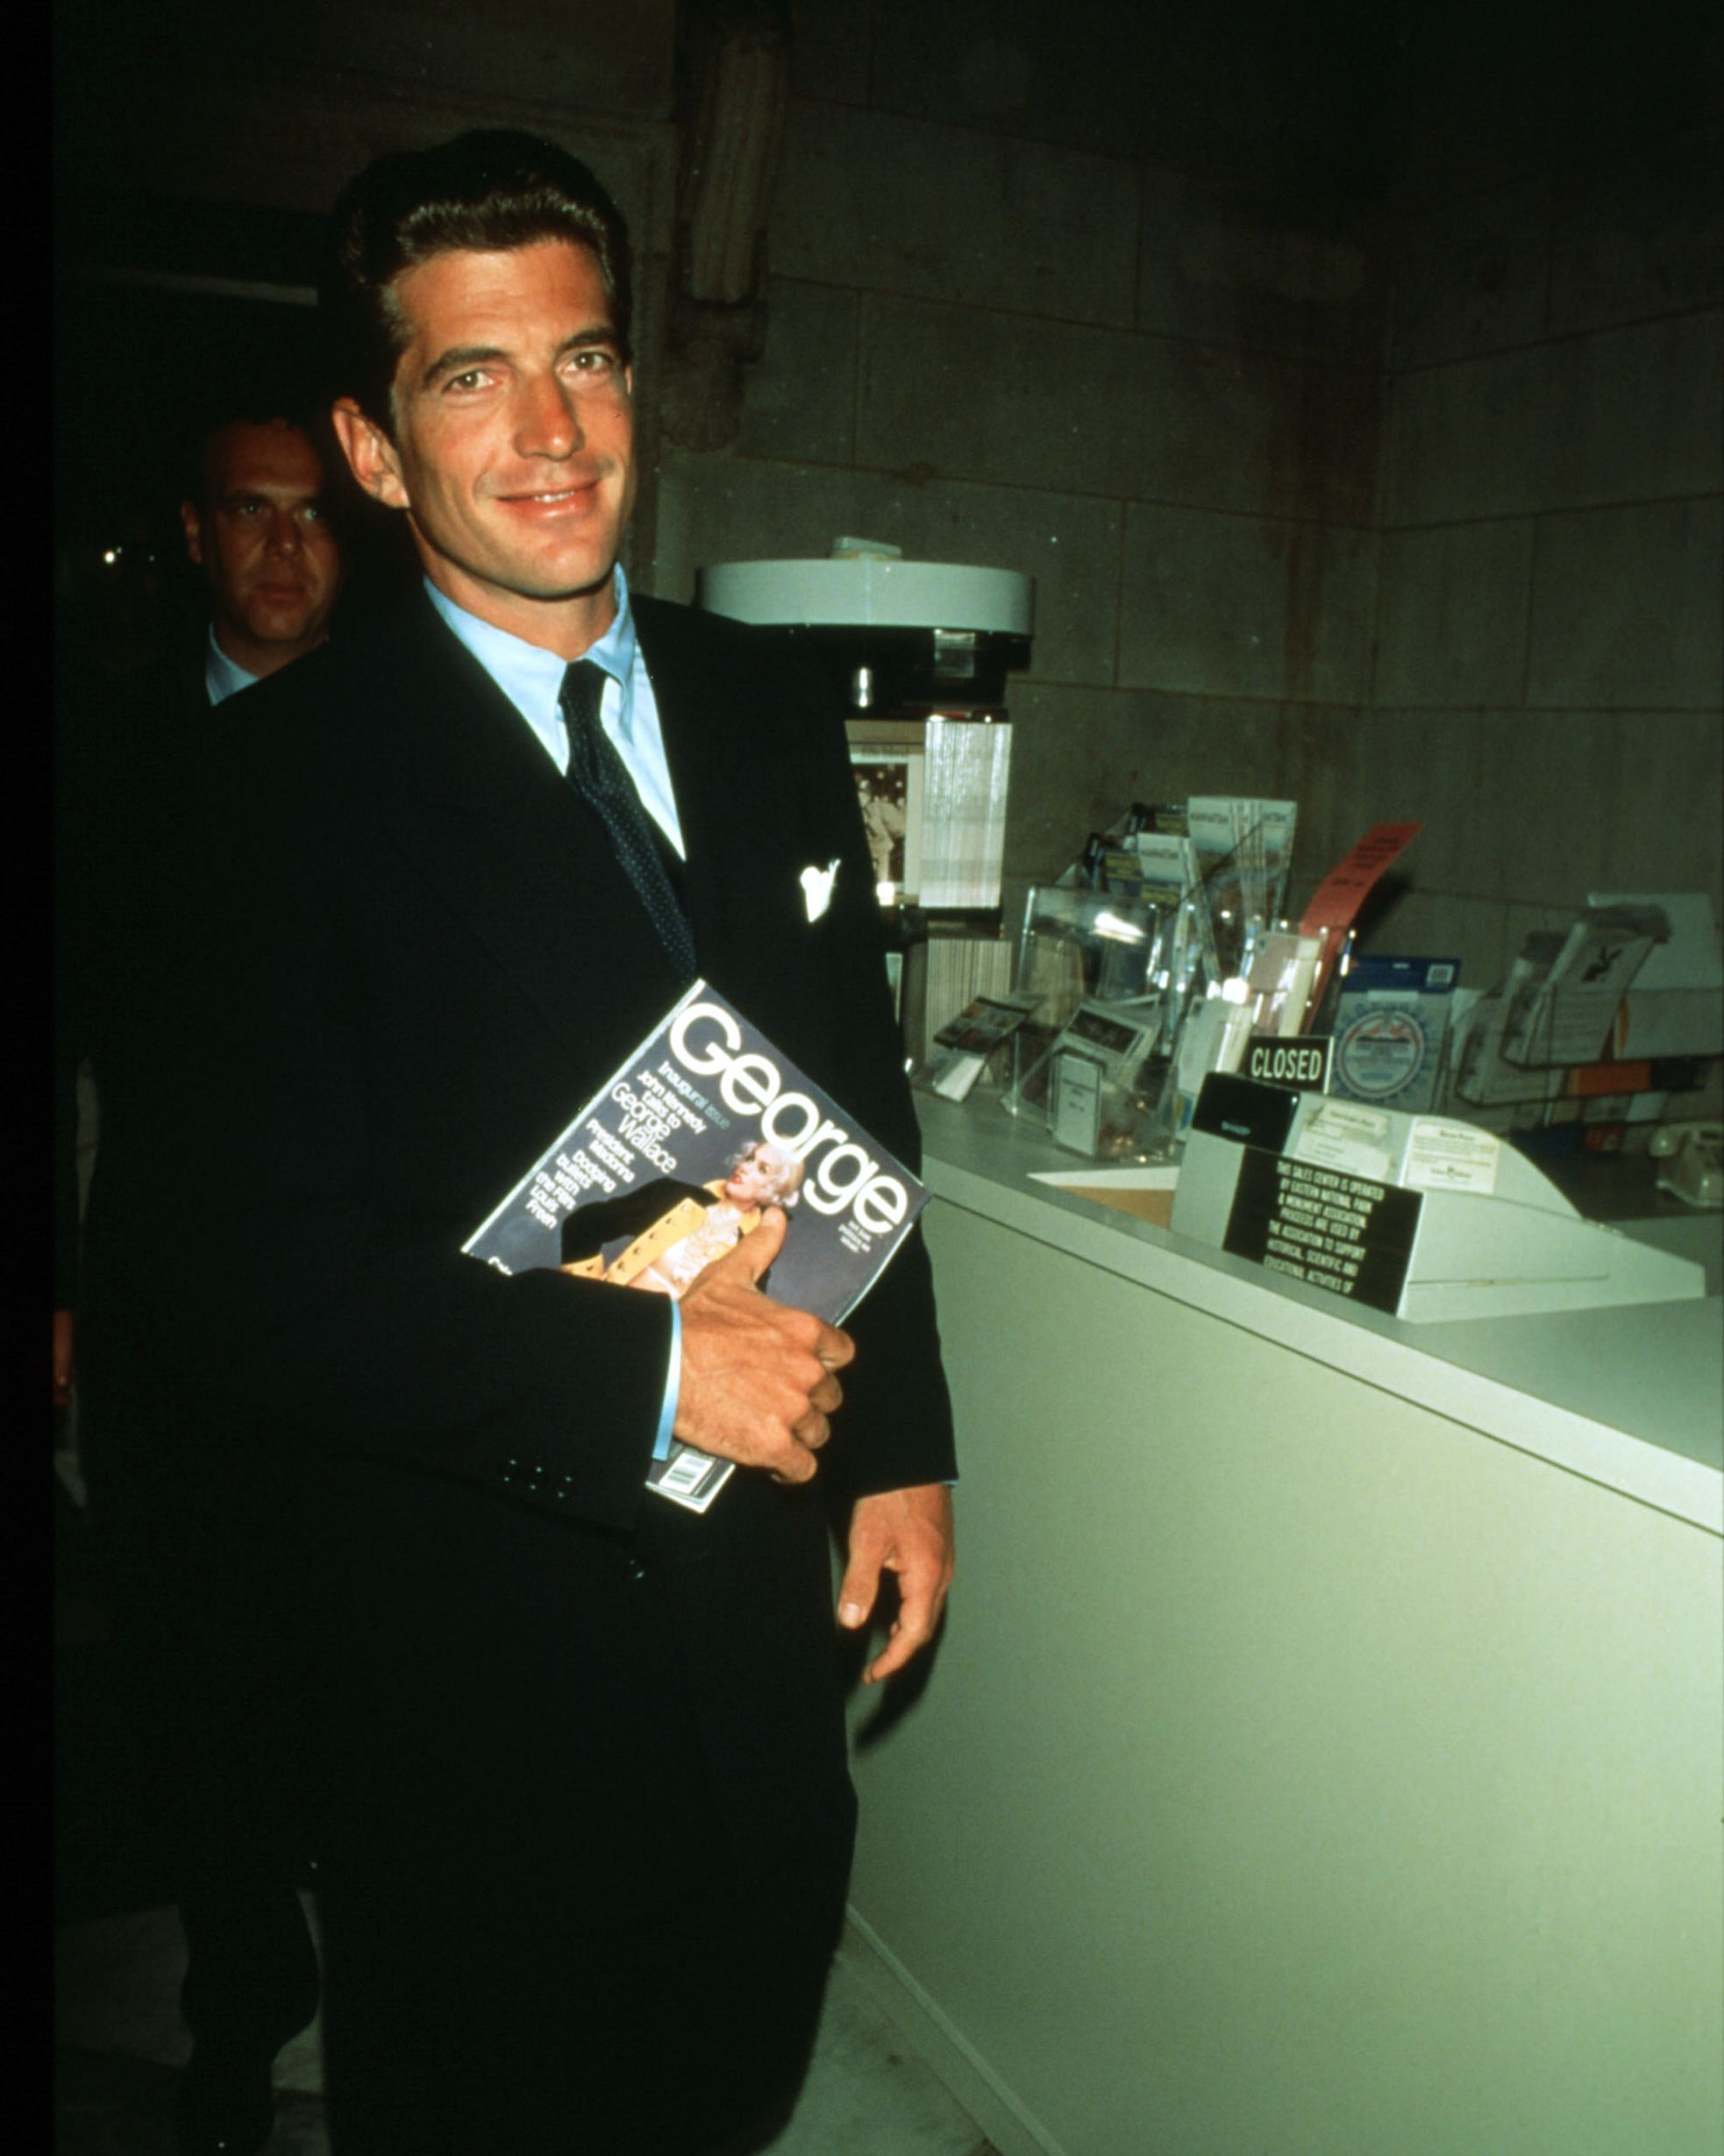 John F. Kennedy, Jr. at the press conference for George 's launch.